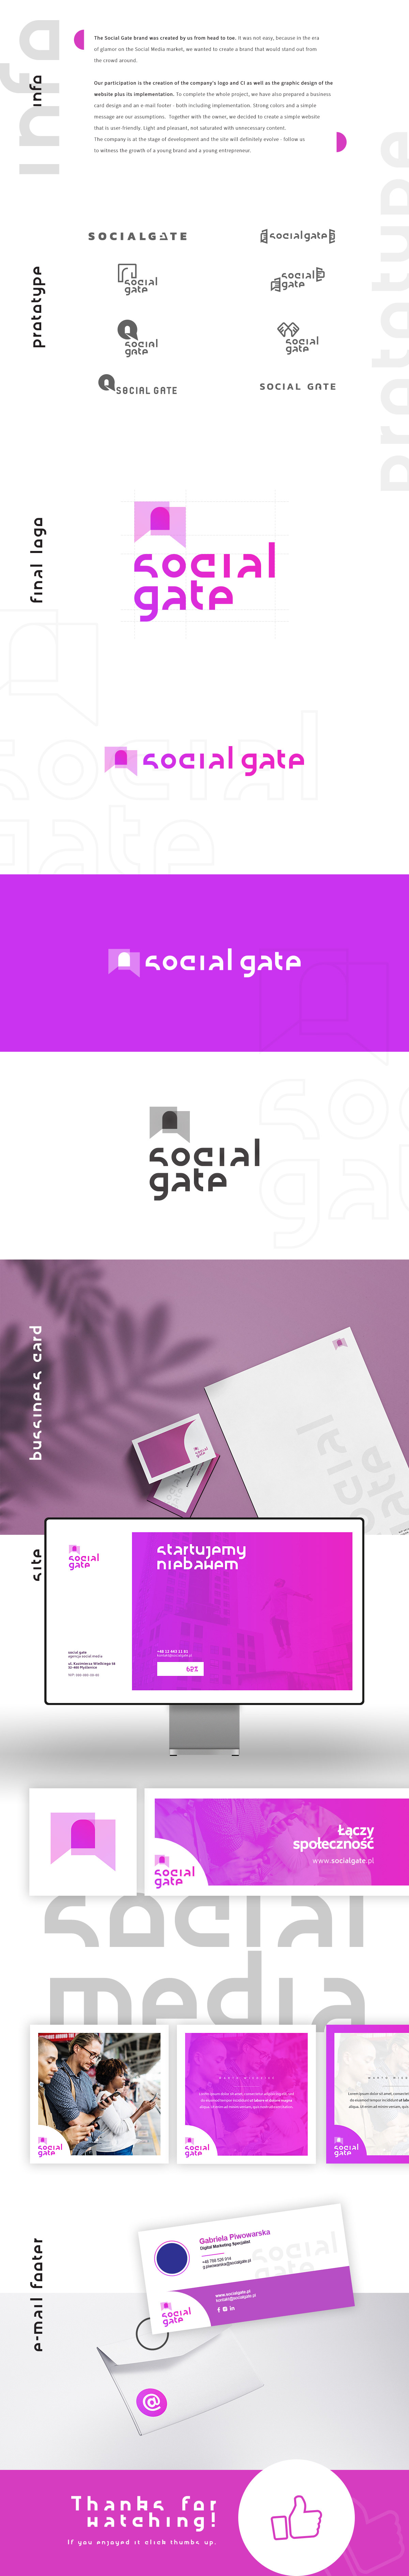 business card e-mail footer facebook key visual layouts page in progress pink purple social marketing styl